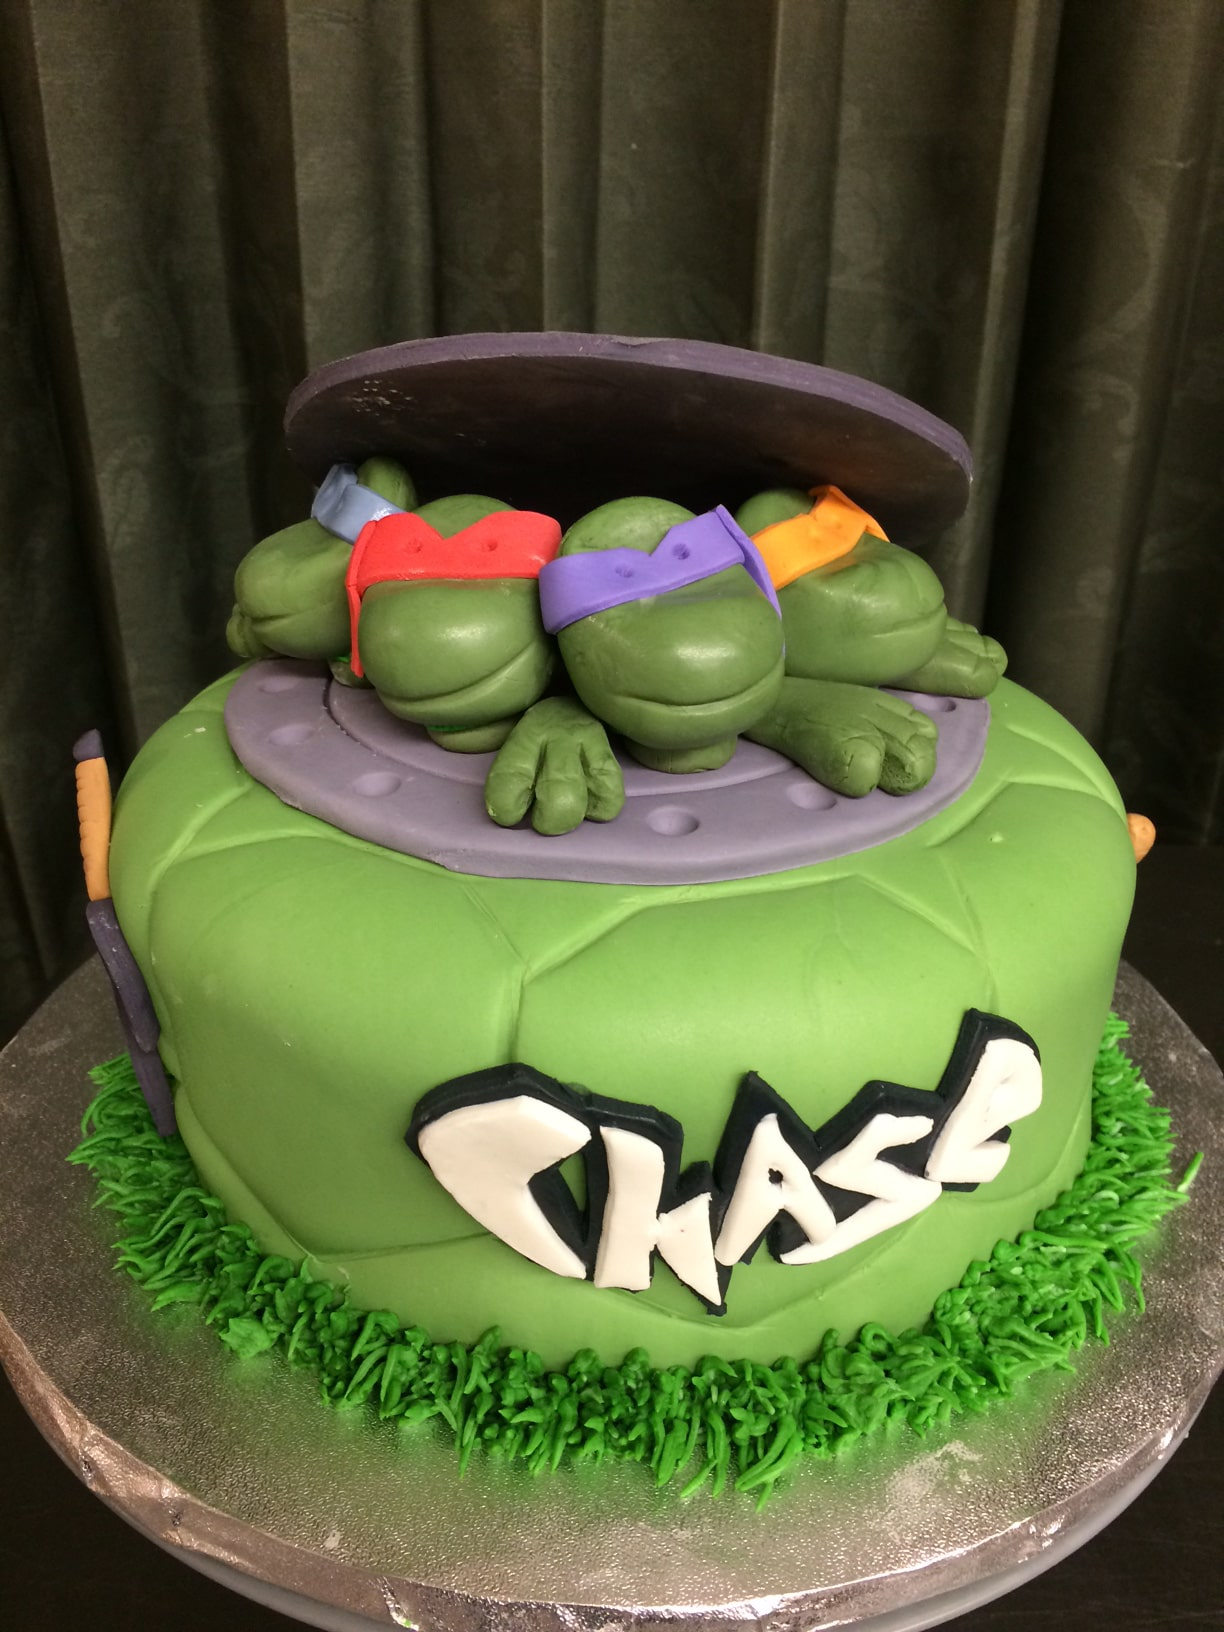 From Ninja Turtles To Princessesyour Childs Cake Will Be The Hit Of Party And You Hero That Made Day Special